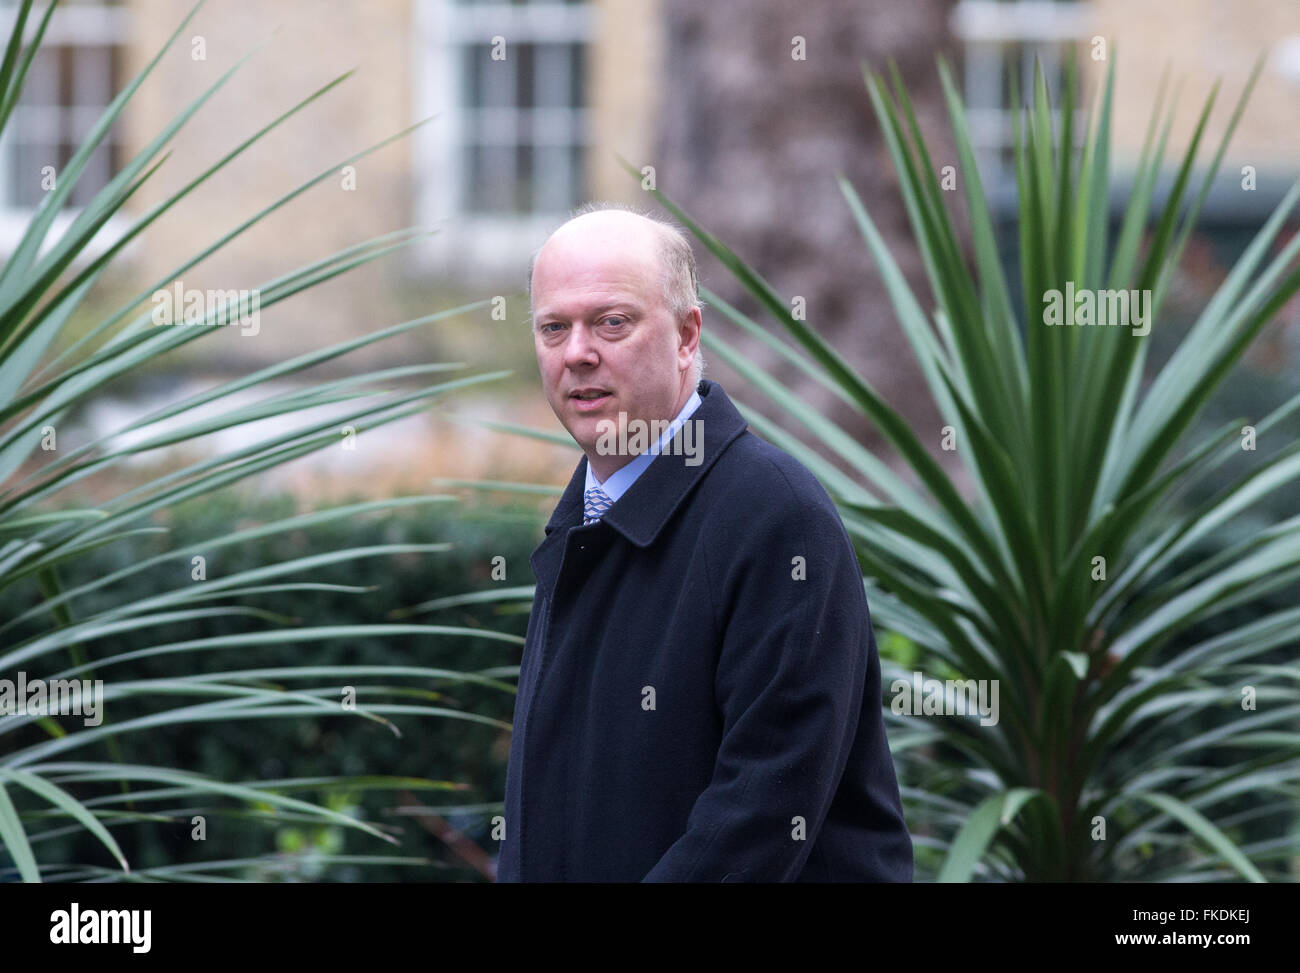 Chris Grayling,Leader of the House of Commons and the Lord President of the Council, at 10 Downing street for a - Stock Image